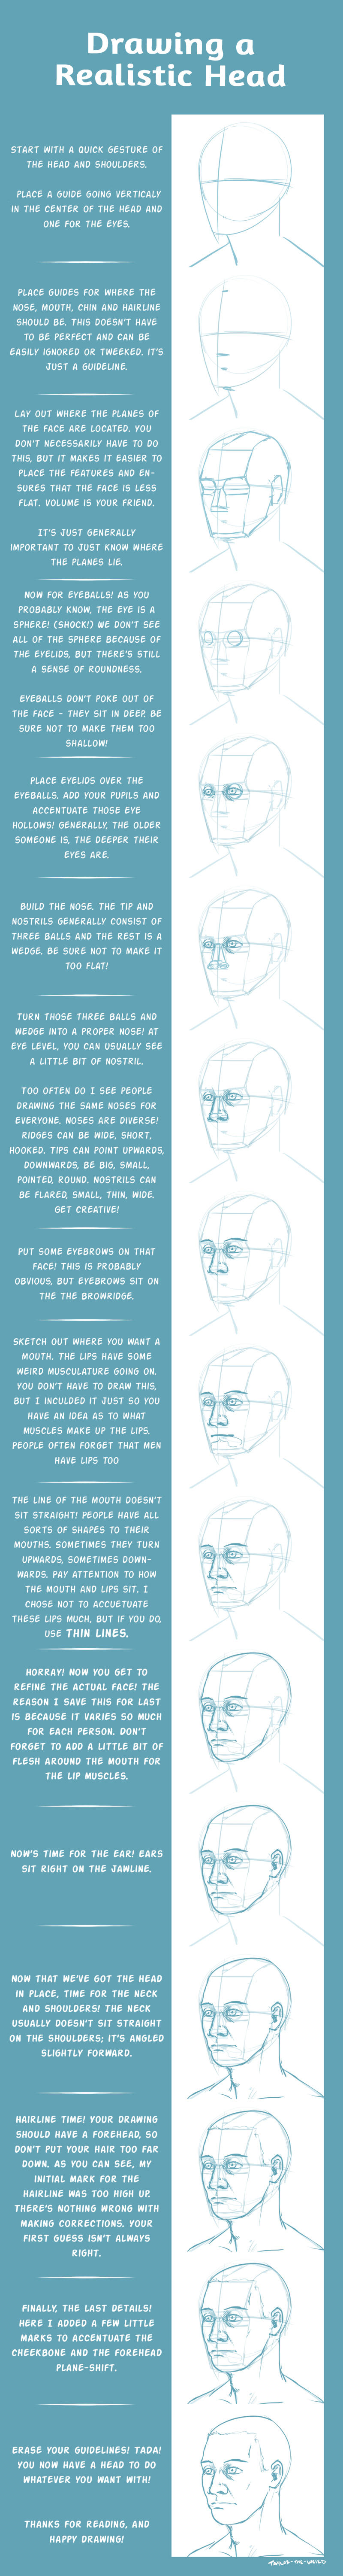 Drawing Realistic Heads - A Guide by Taylor-the-Weird